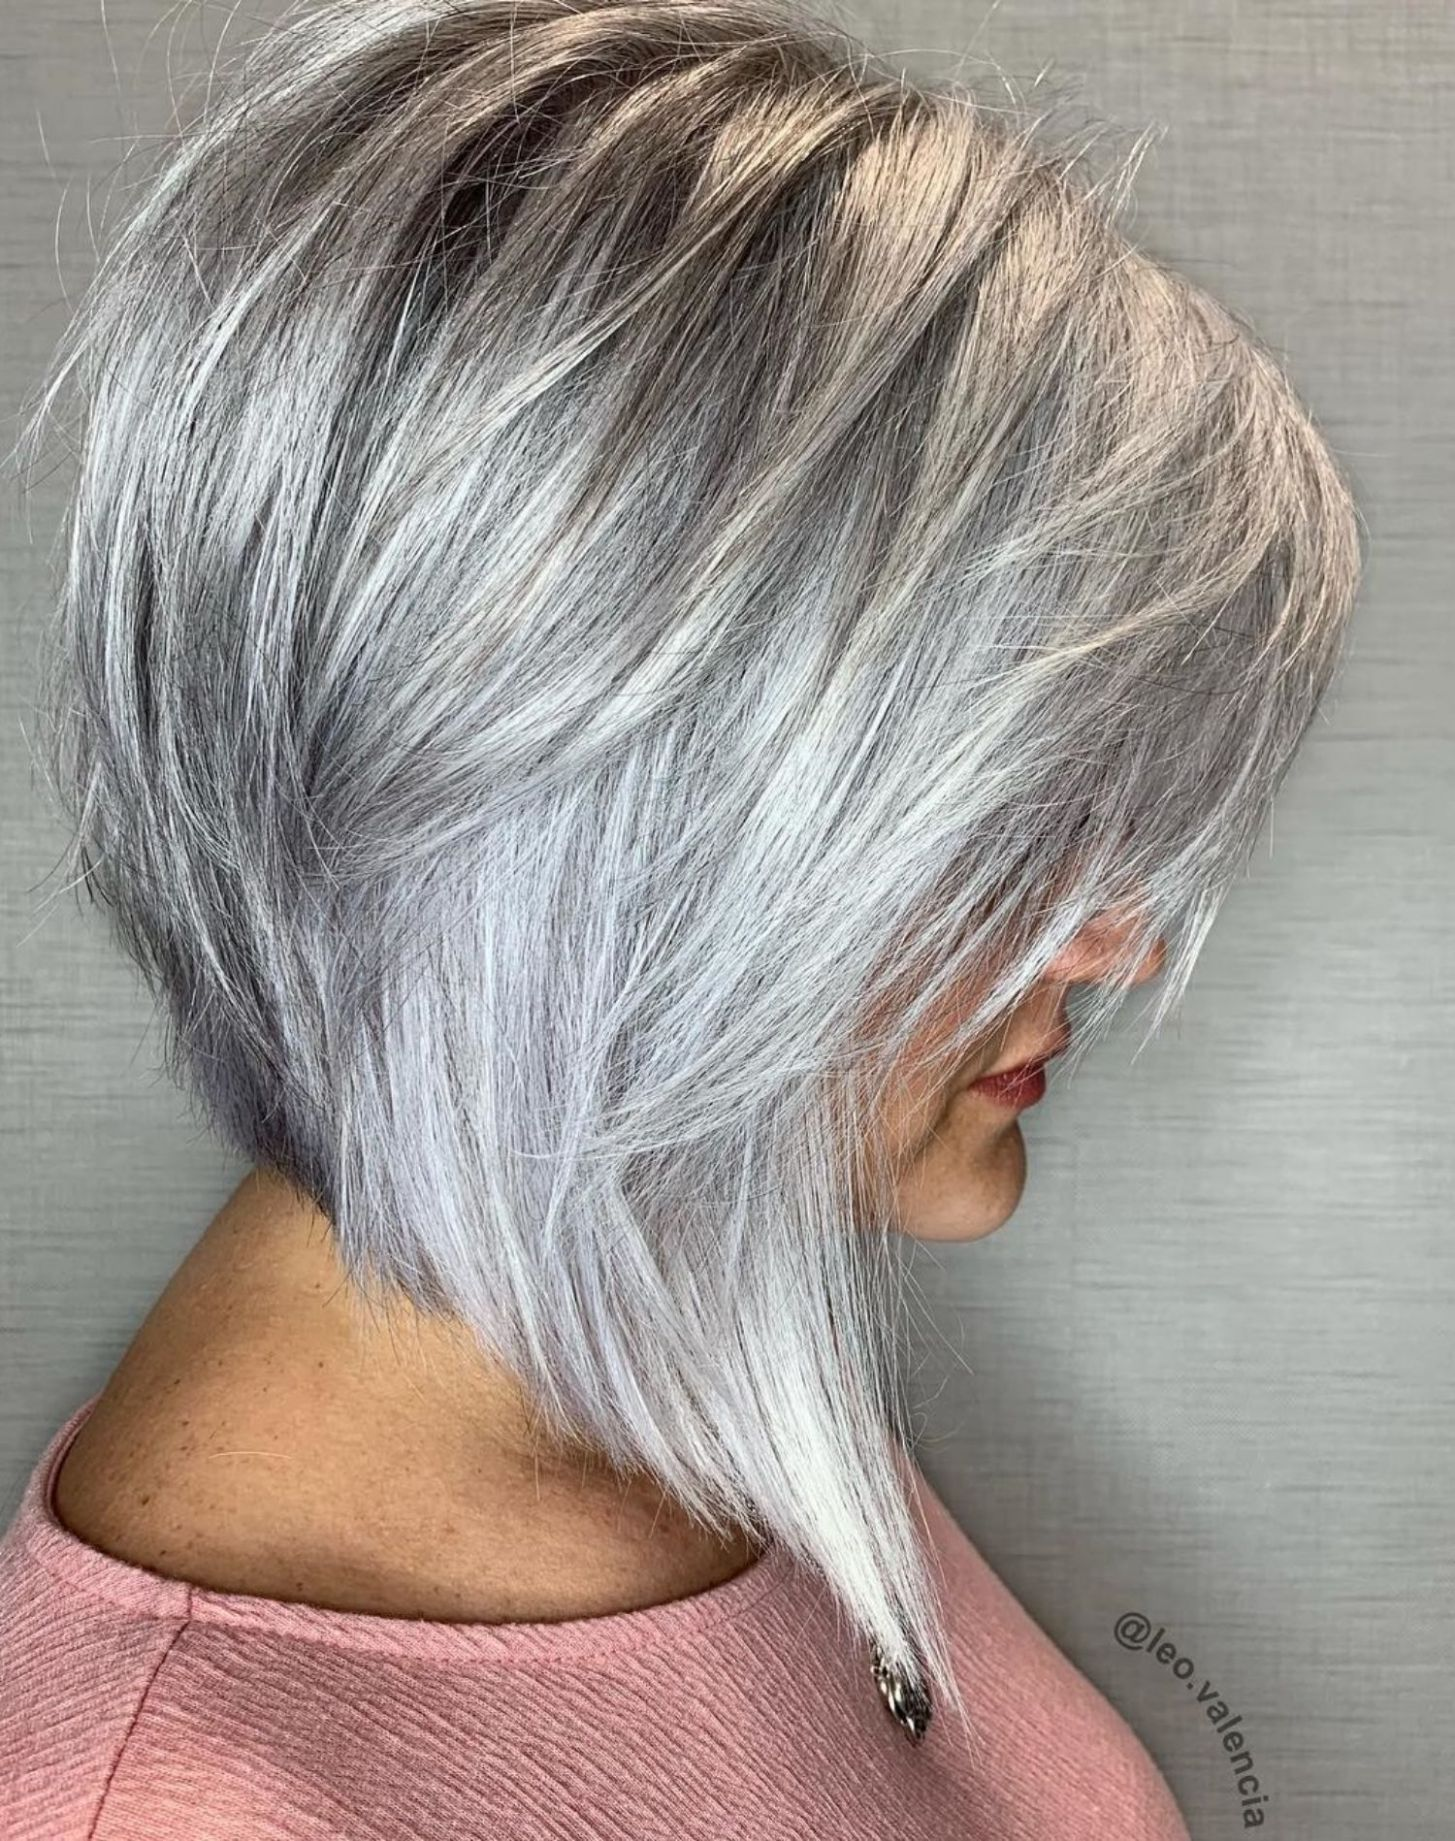 2020 New Gray Hair Wigs For African American Women Grey Ombre Hair Wigs Human Hair Near Me 360 Wigs Wigs And Braids Grey Gray